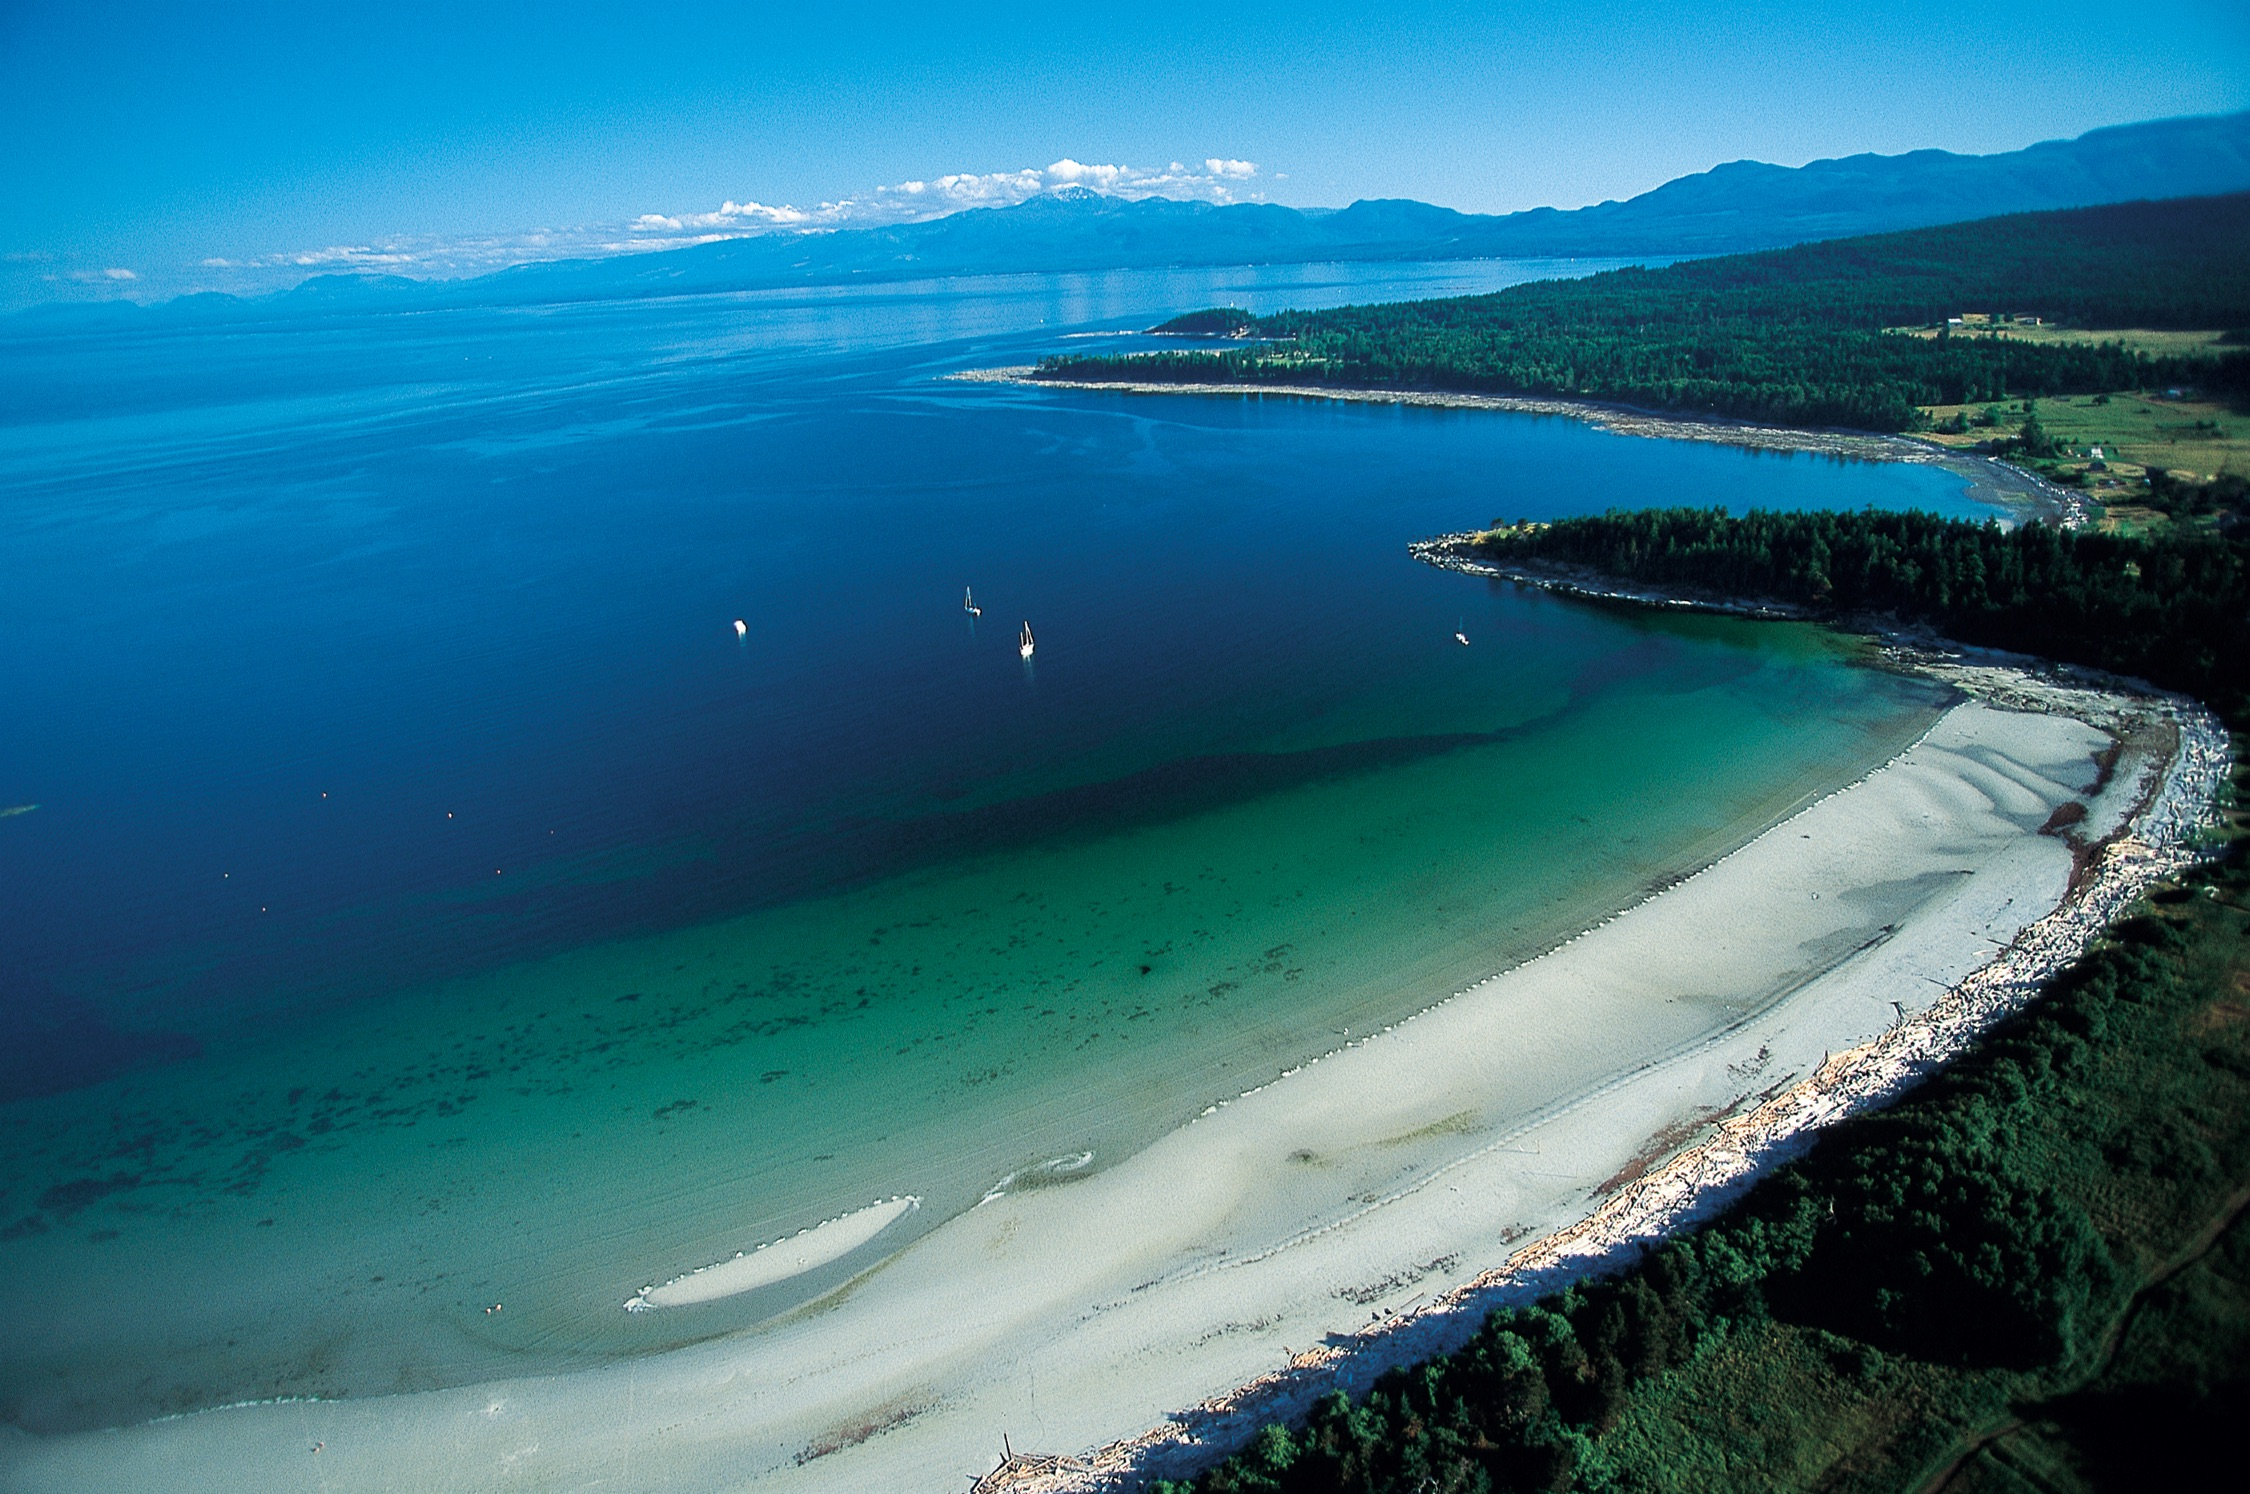 A stretch of beach in the Gulf Islands with turquoise waters on one side and forest on the other.